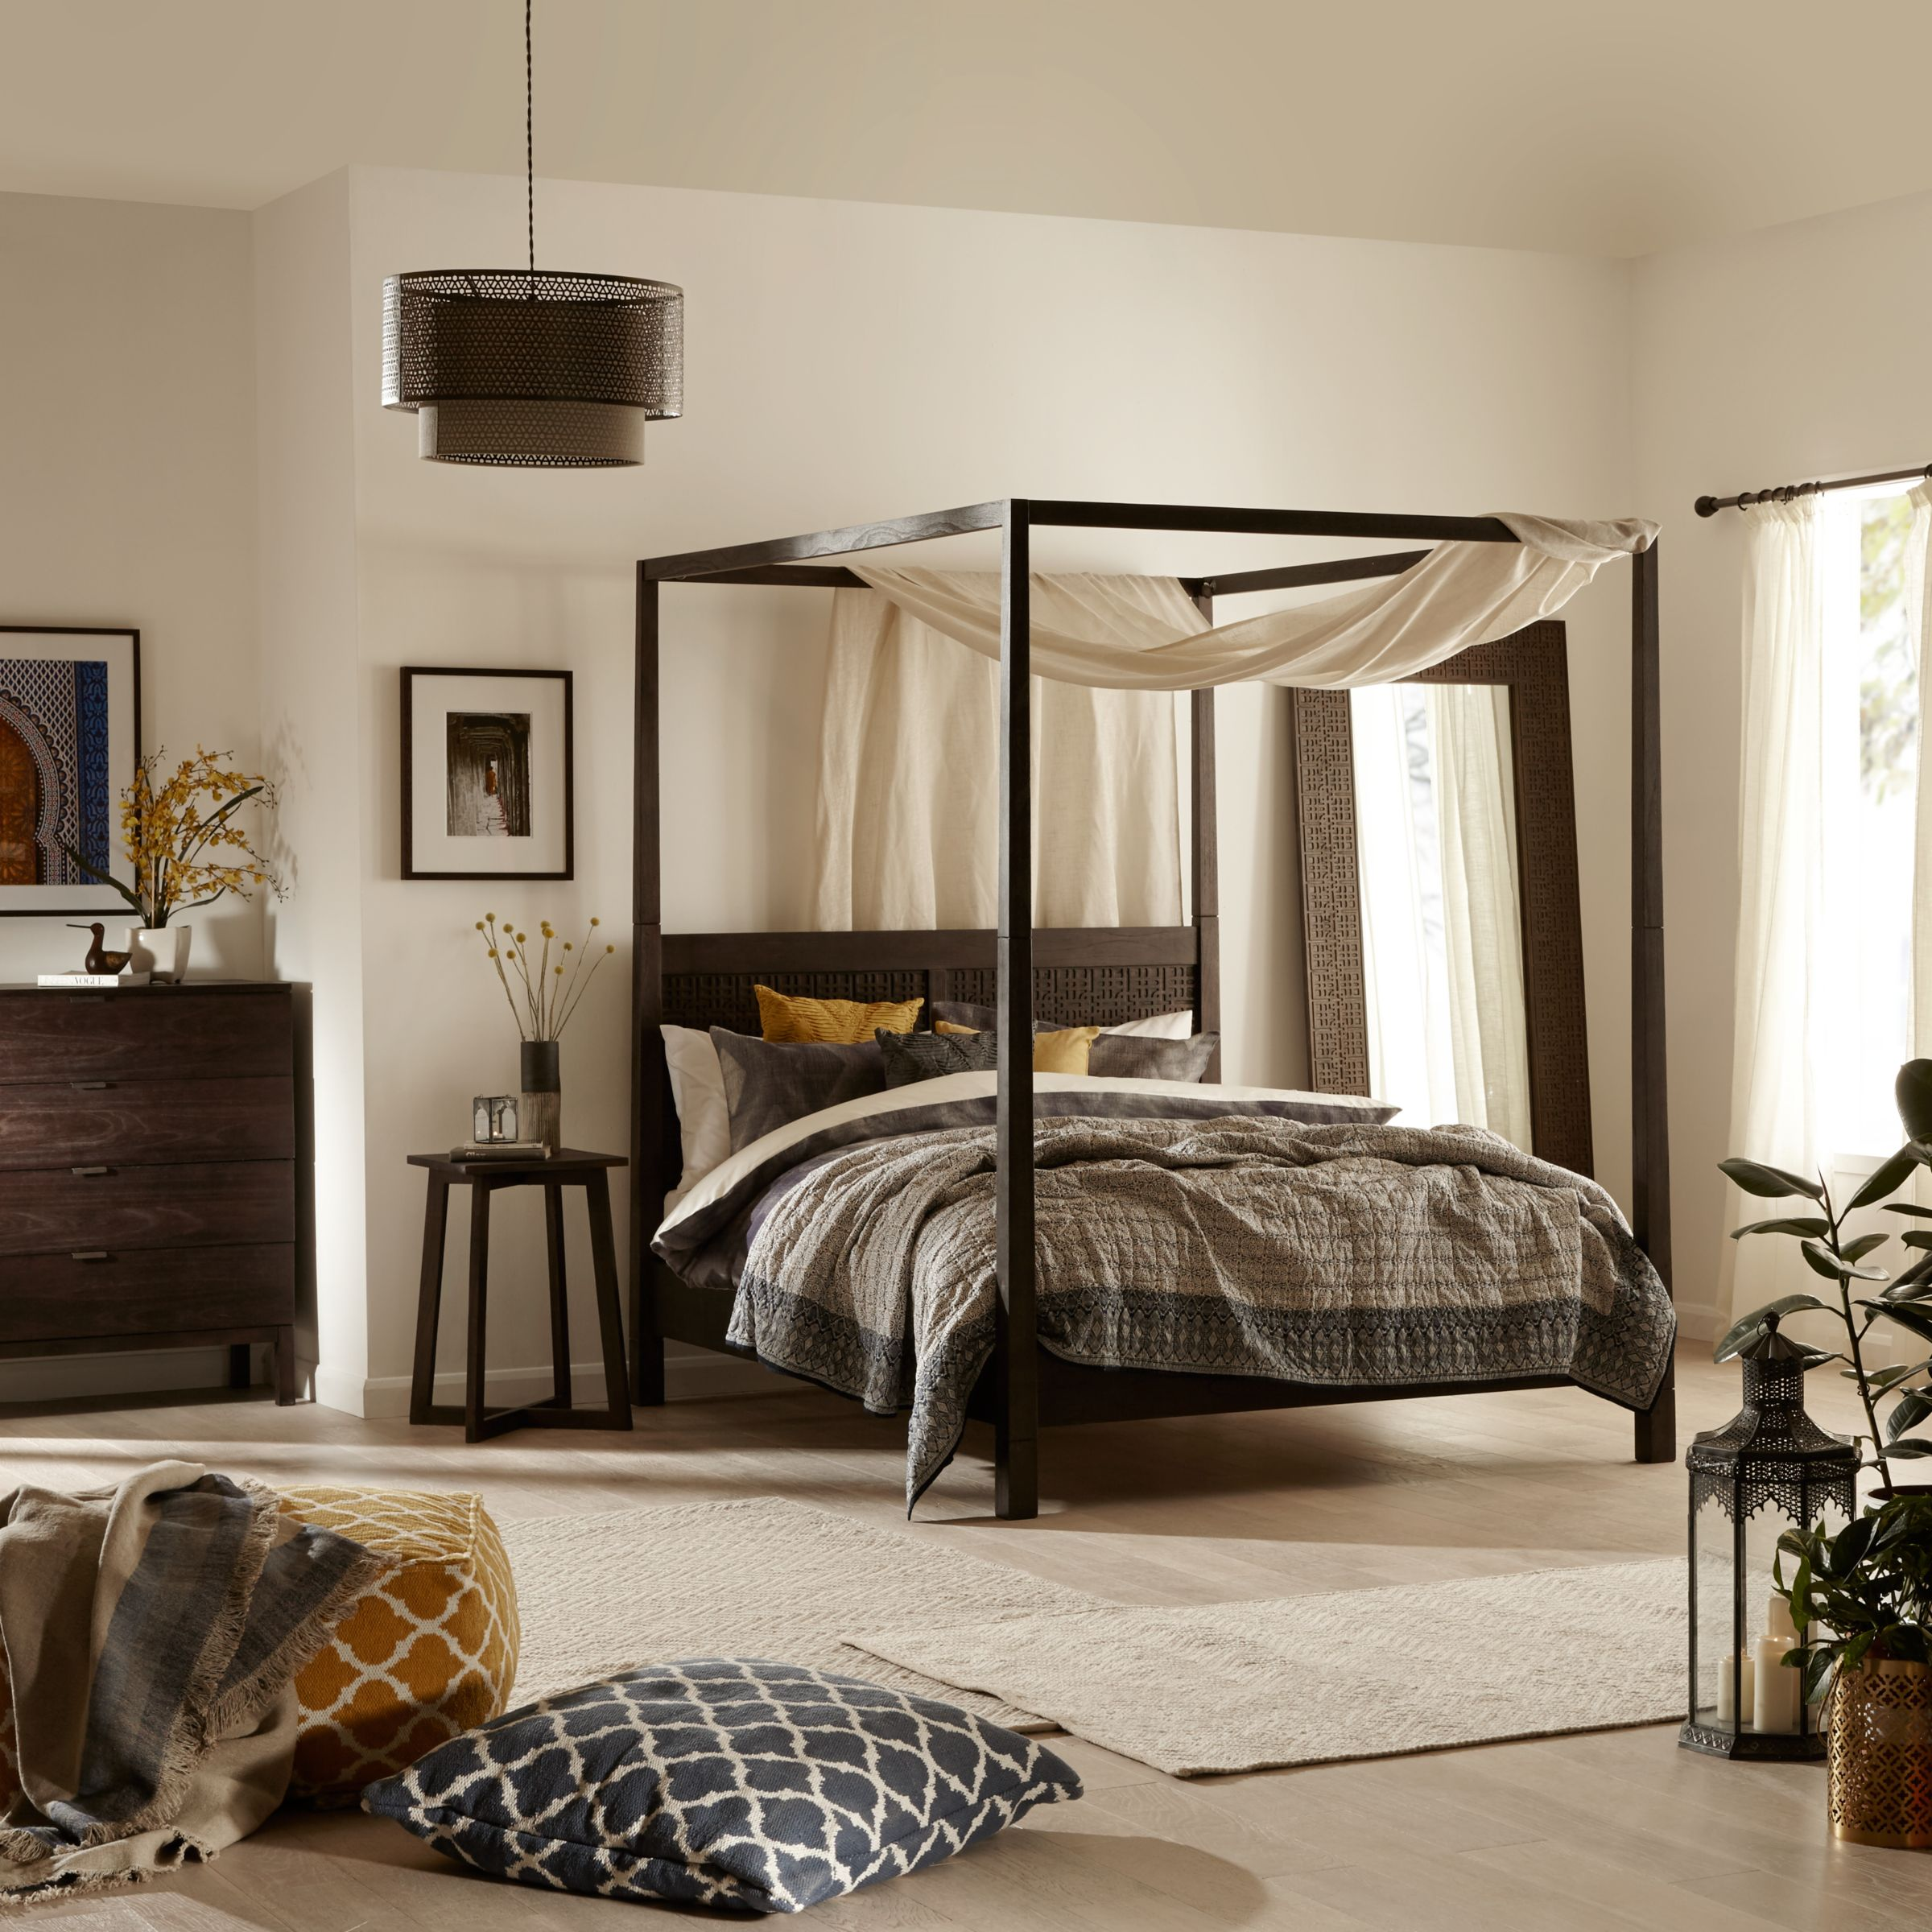 John Lewis Flores 4 Poster Bed Frame Super King Size Grey At John Lewis Partners